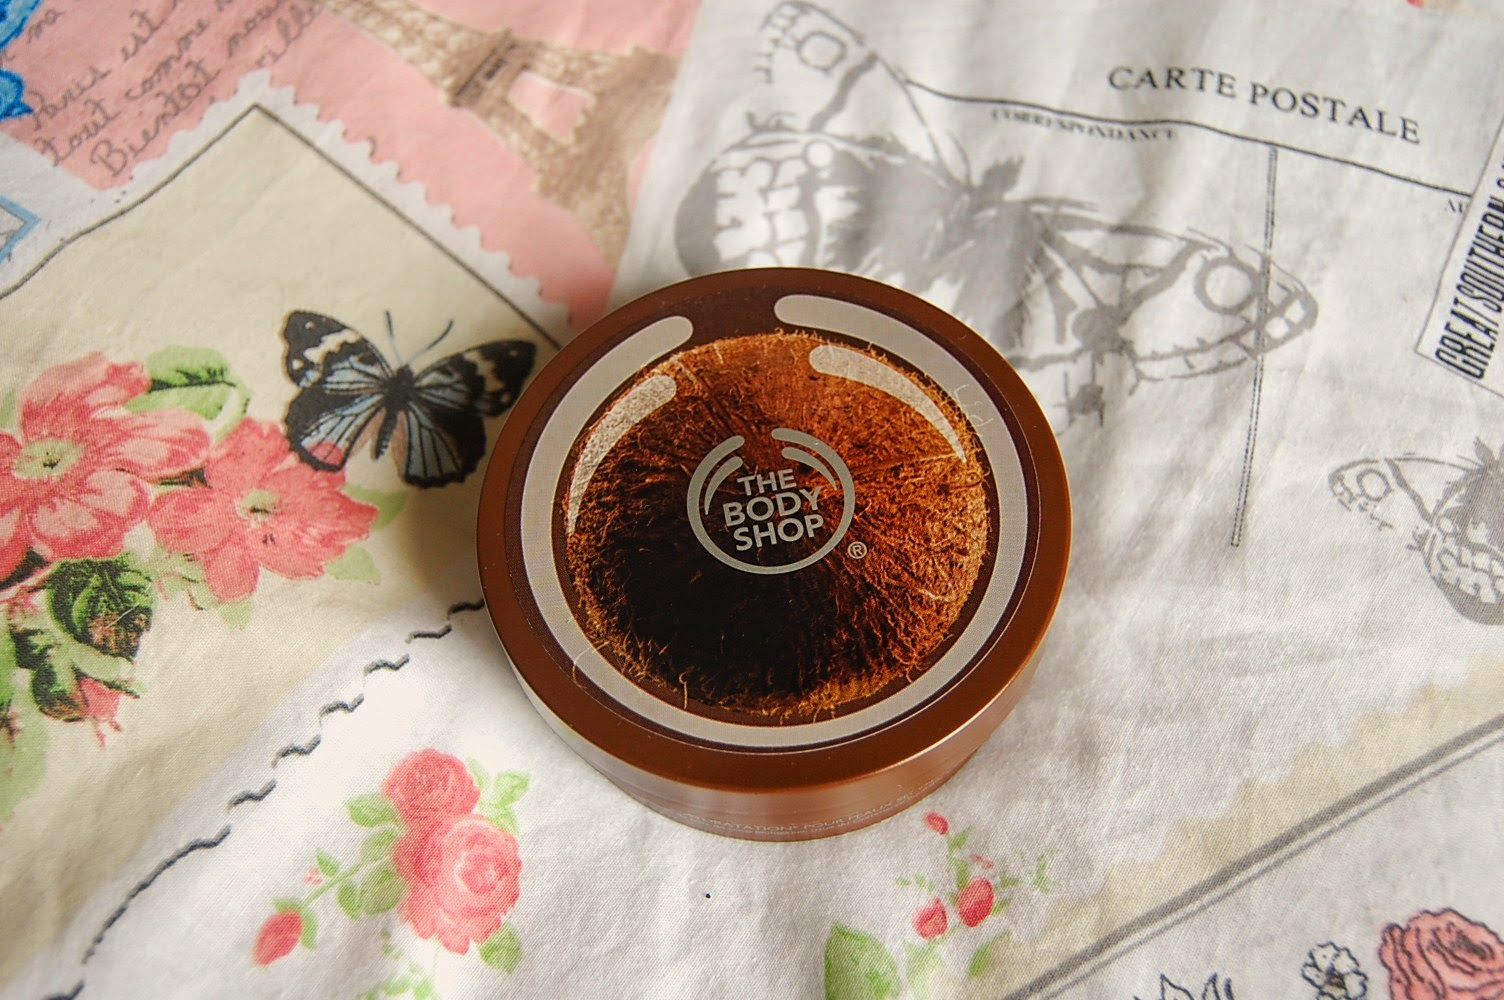 The Body Shop Coconut Body Butter: The Review